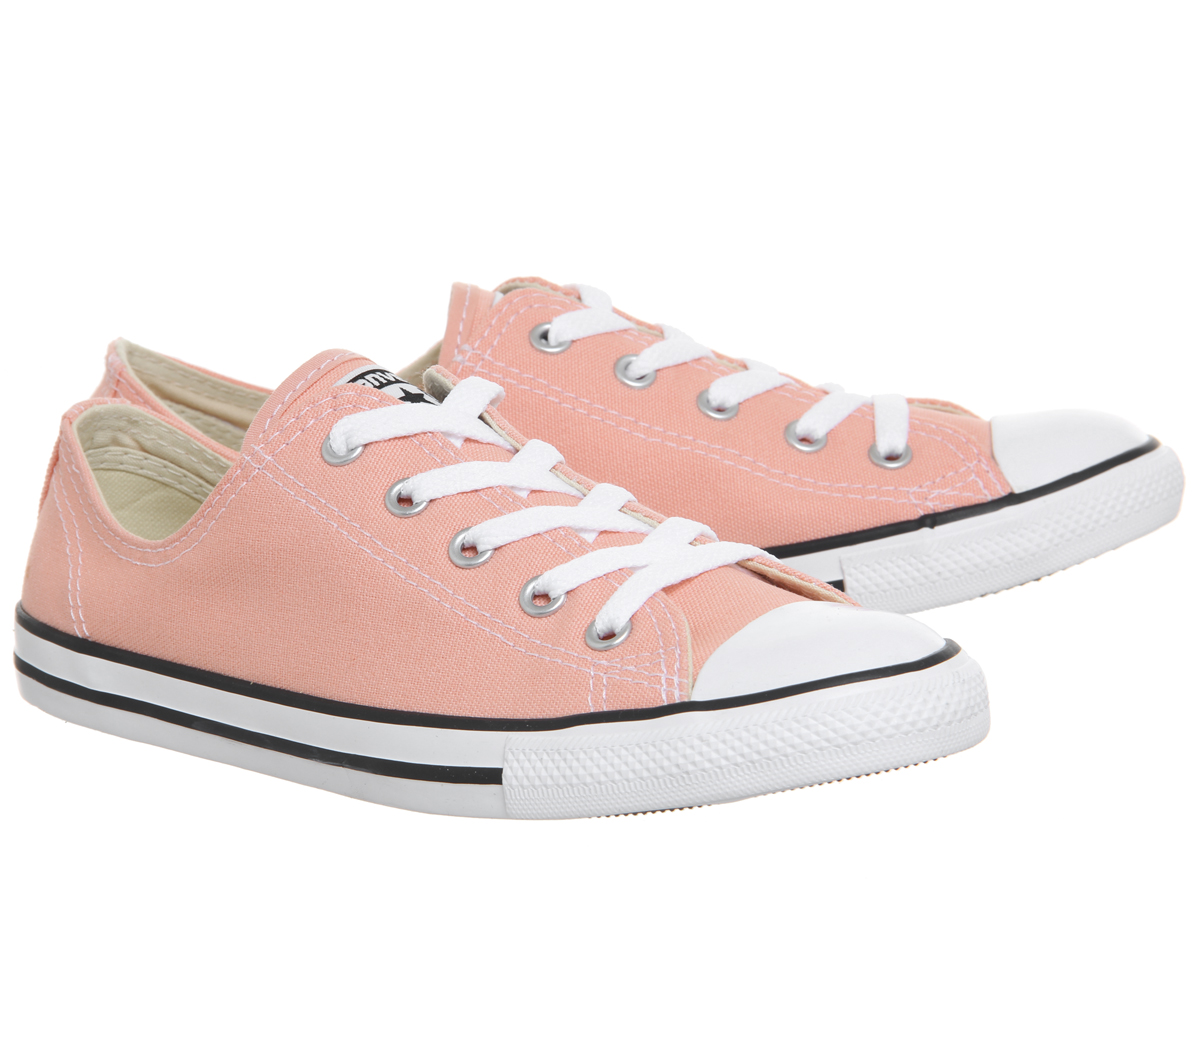 fb6c1a99a7c Womens Converse All Star Dainty Trainers Pale Coral Trainers Shoes ...